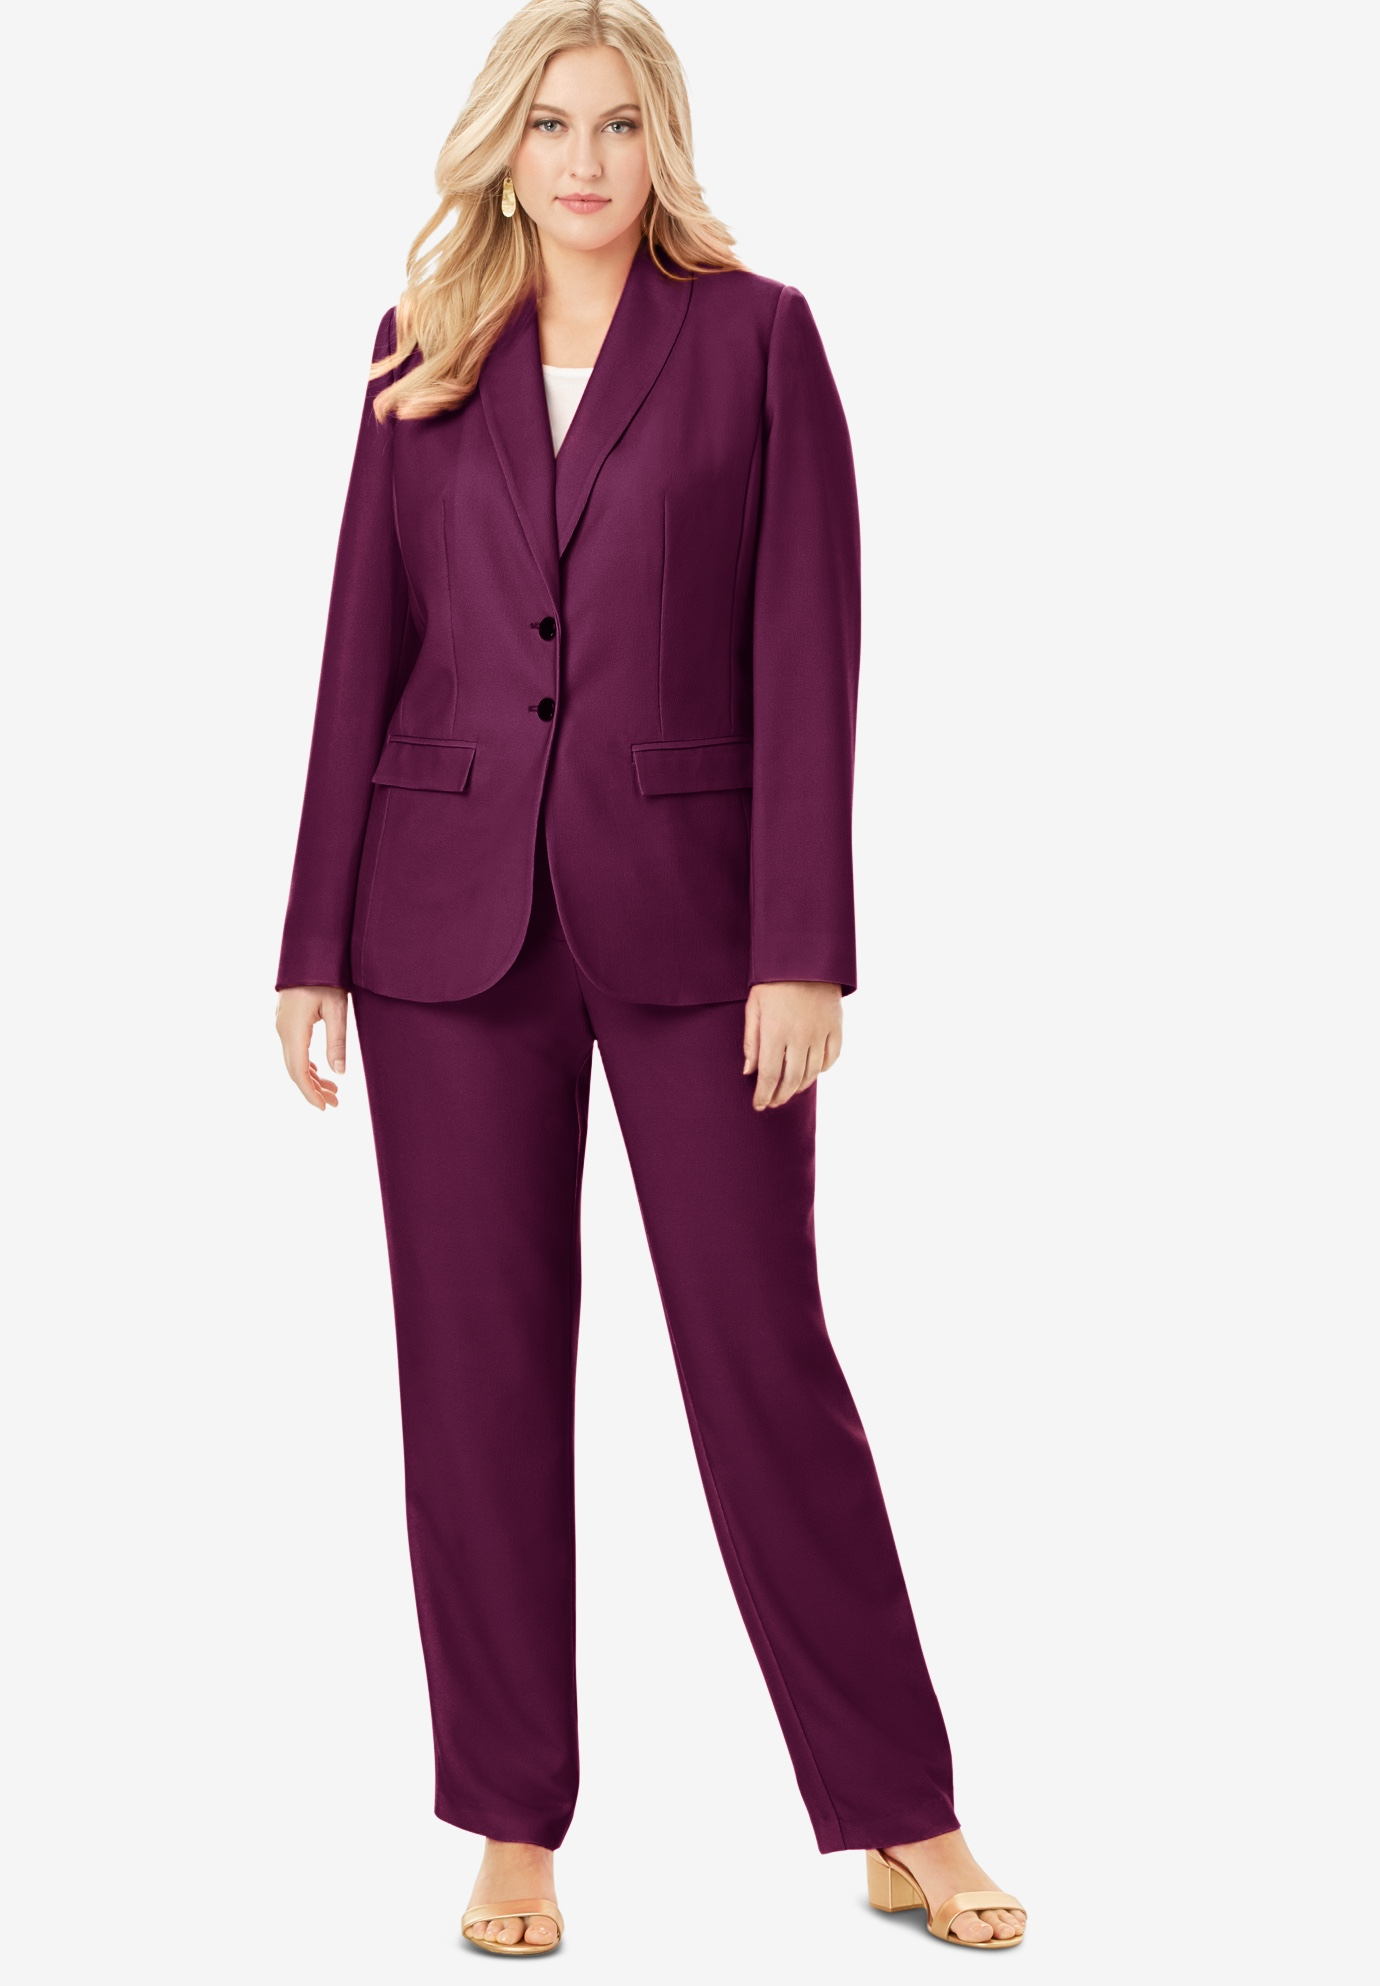 Single Breasted Pant Suit